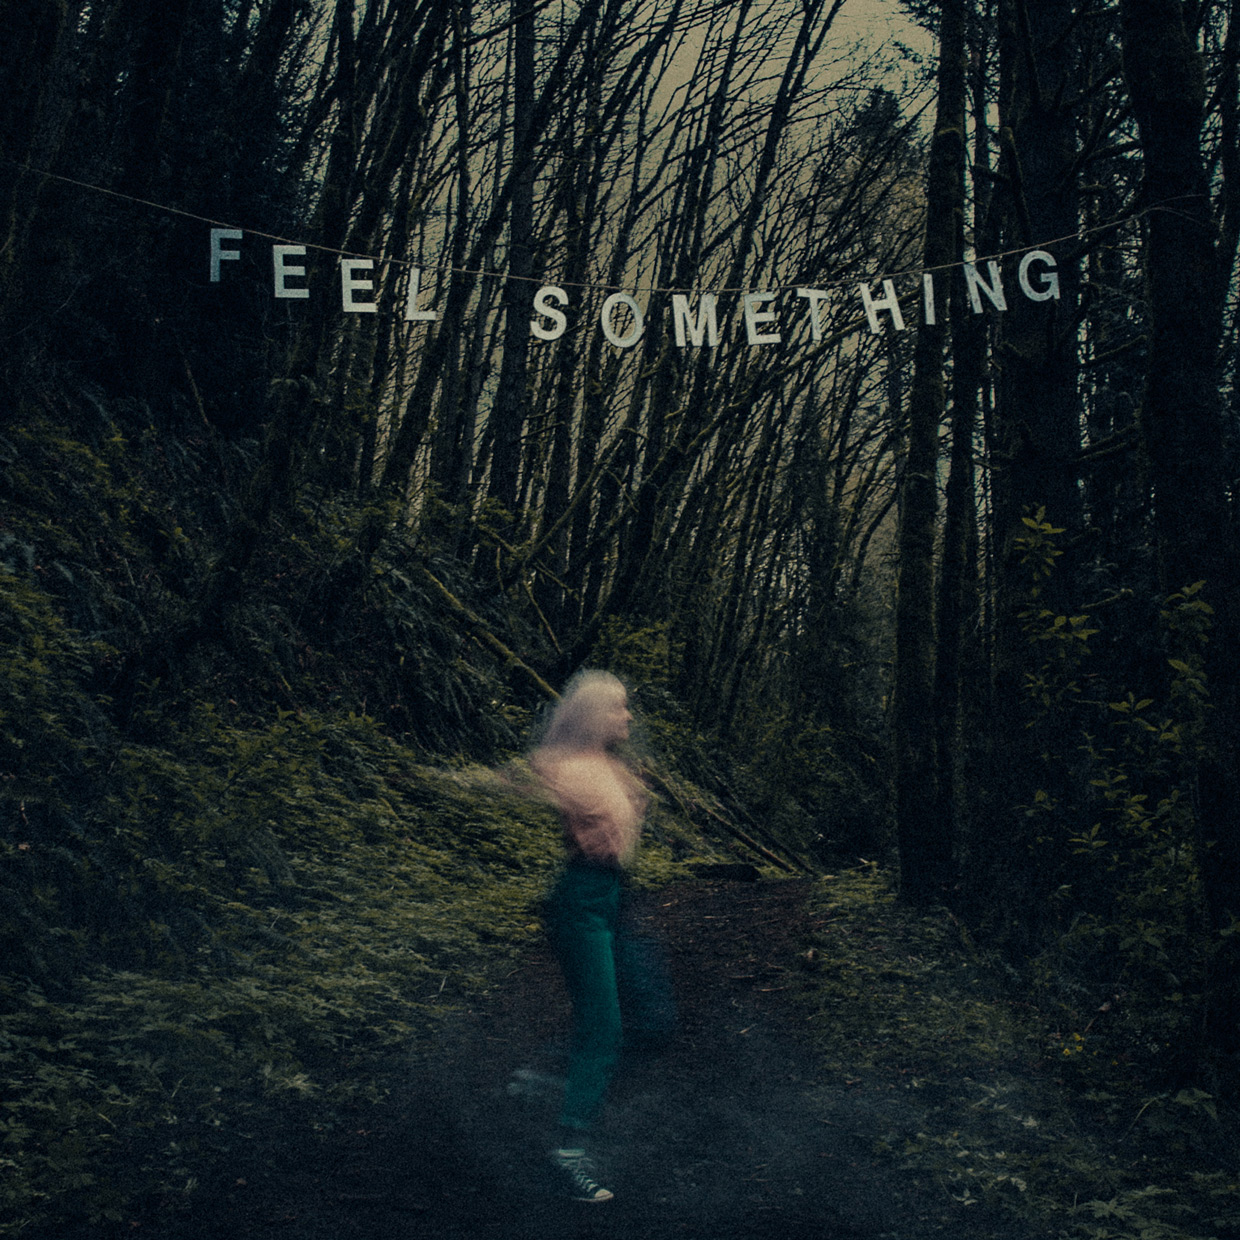 Movements-feel-something-album-art-billboard-1240